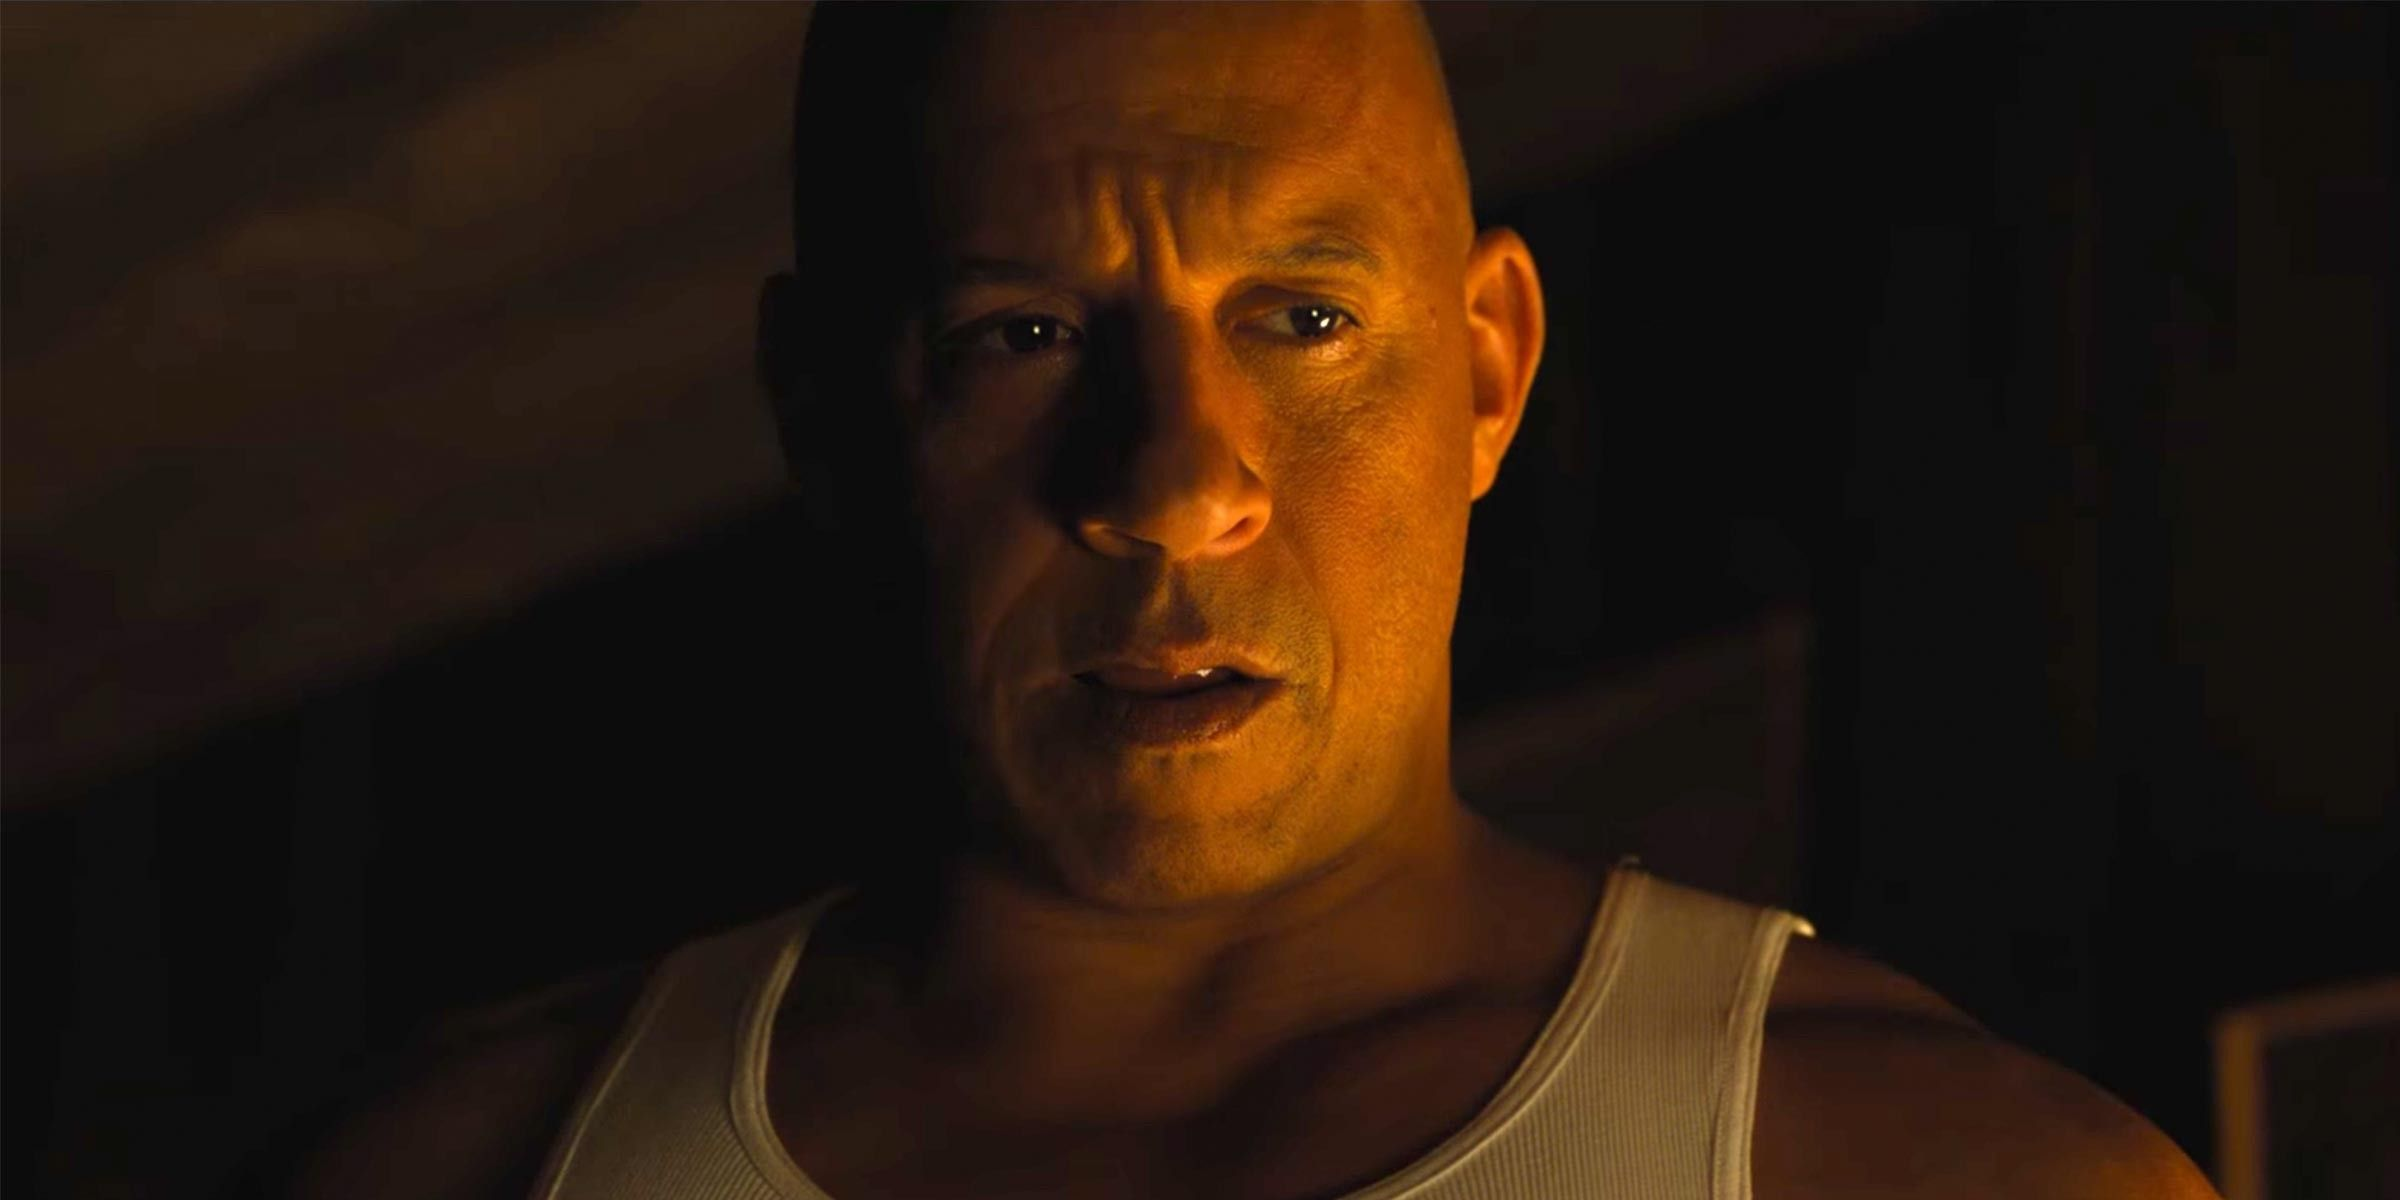 Fast & Furious 9 Trailer Teaser Shows Dom Toretto's New Family